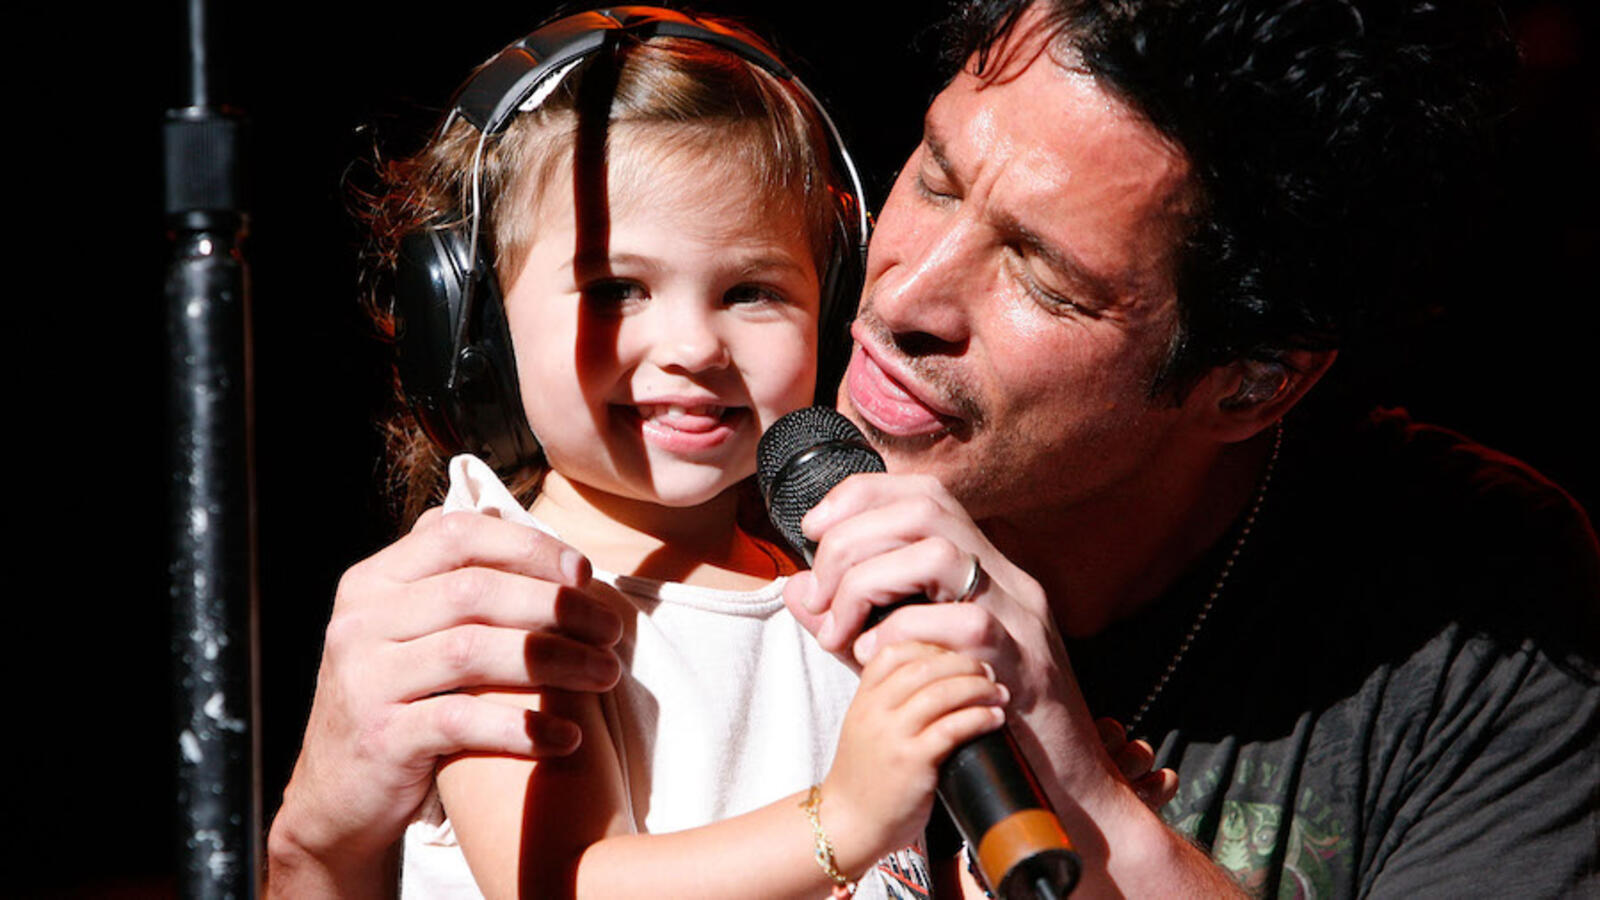 Watch Chris Cornell And Daughter Toni Sing In Never-Before-Seen Home Videos